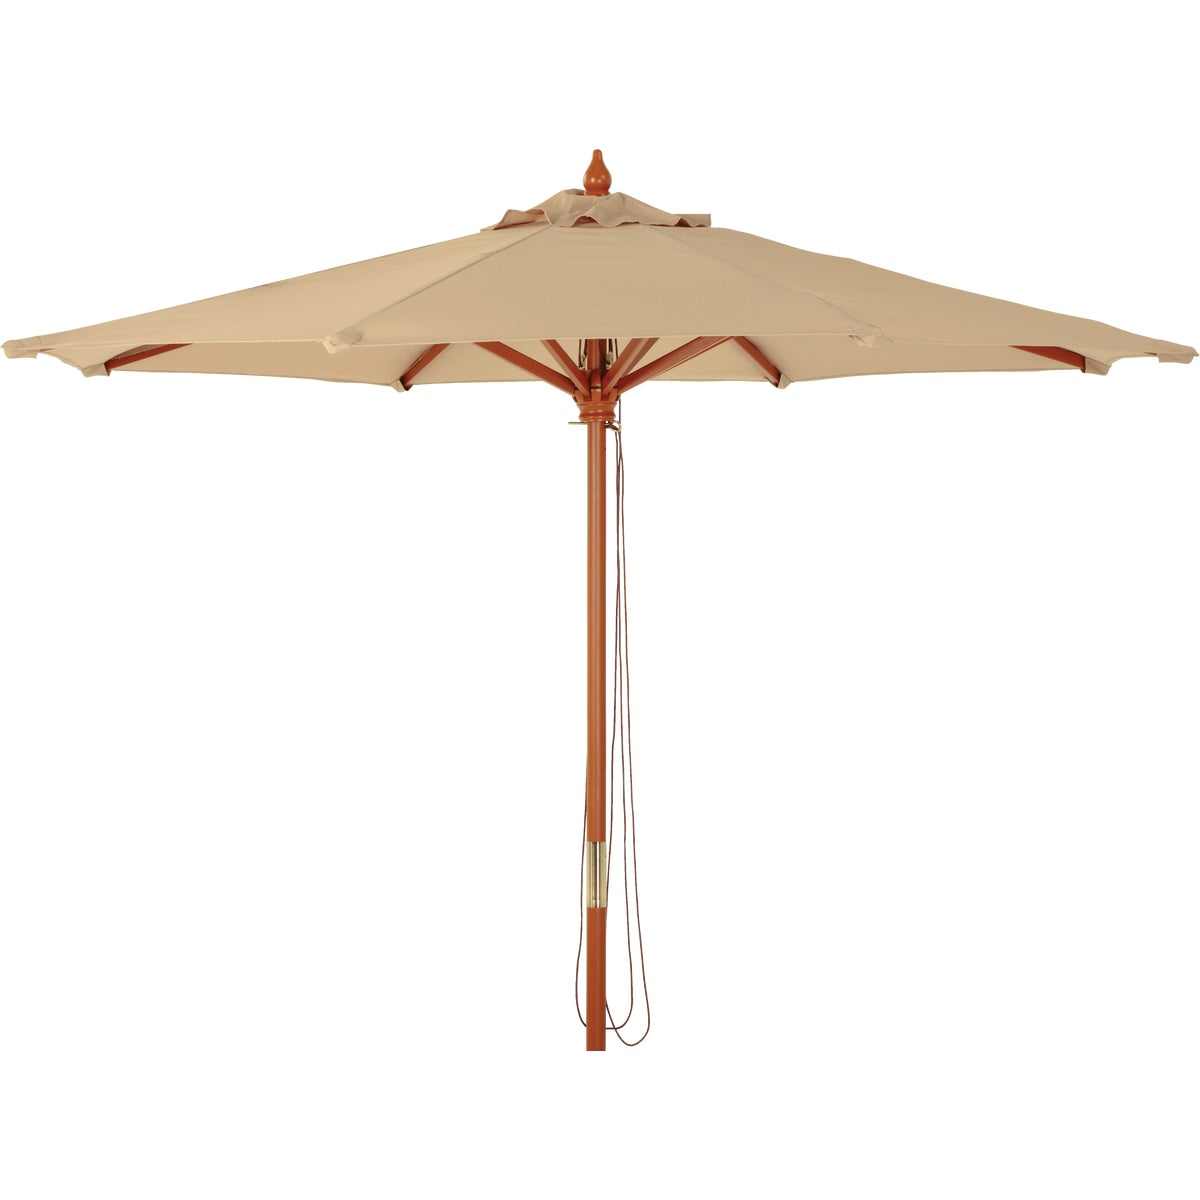 7.5' MARKET TAN UMBRELLA - TJWU-003A-230-TN by Do it Best